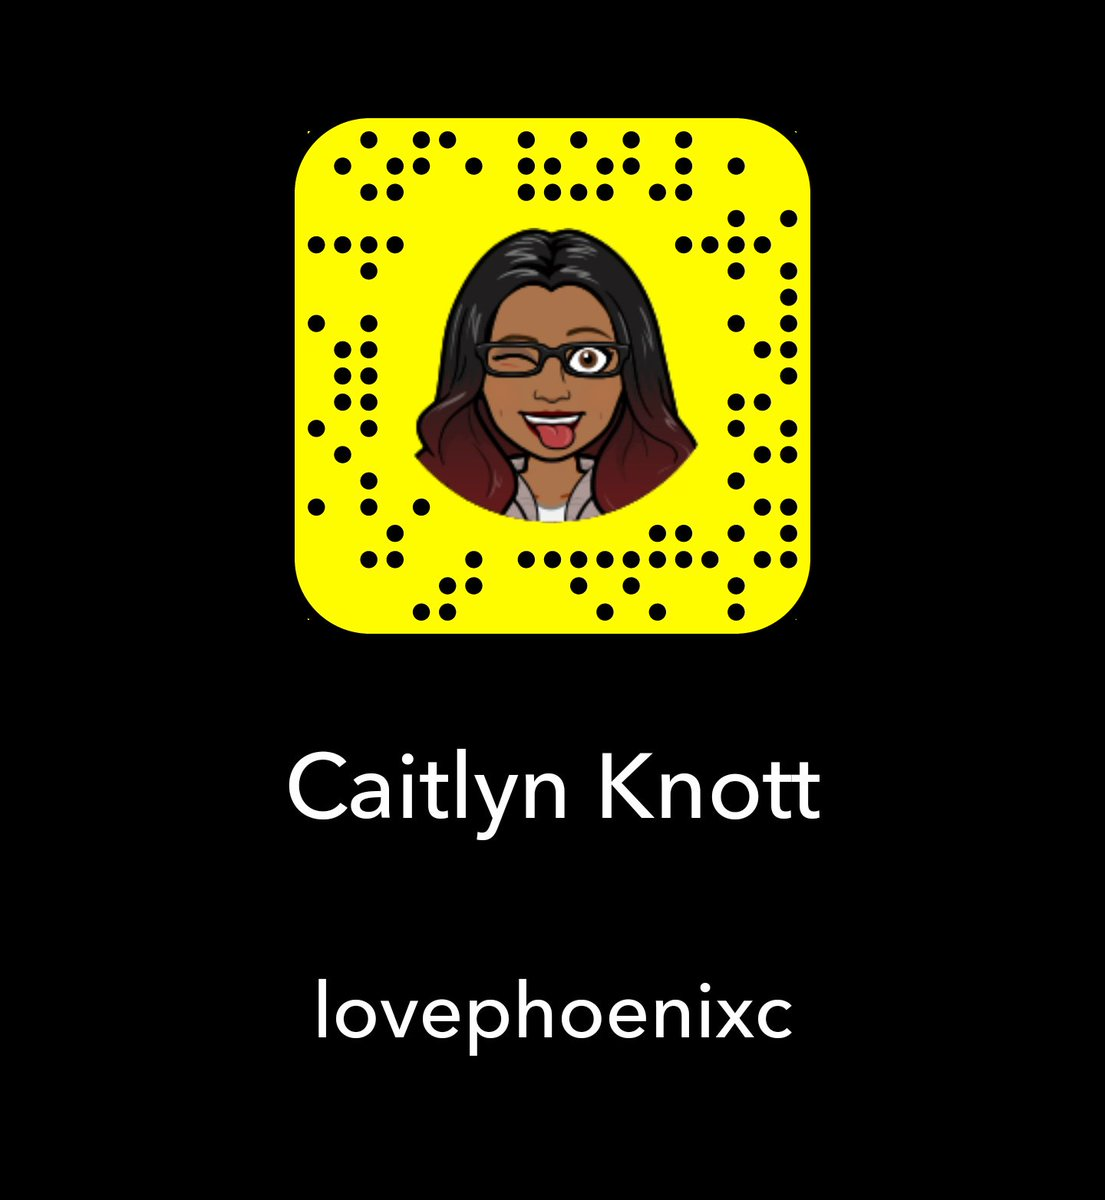 Xxx Snap Chat Names Best snapchat#addme hashtag on twitter